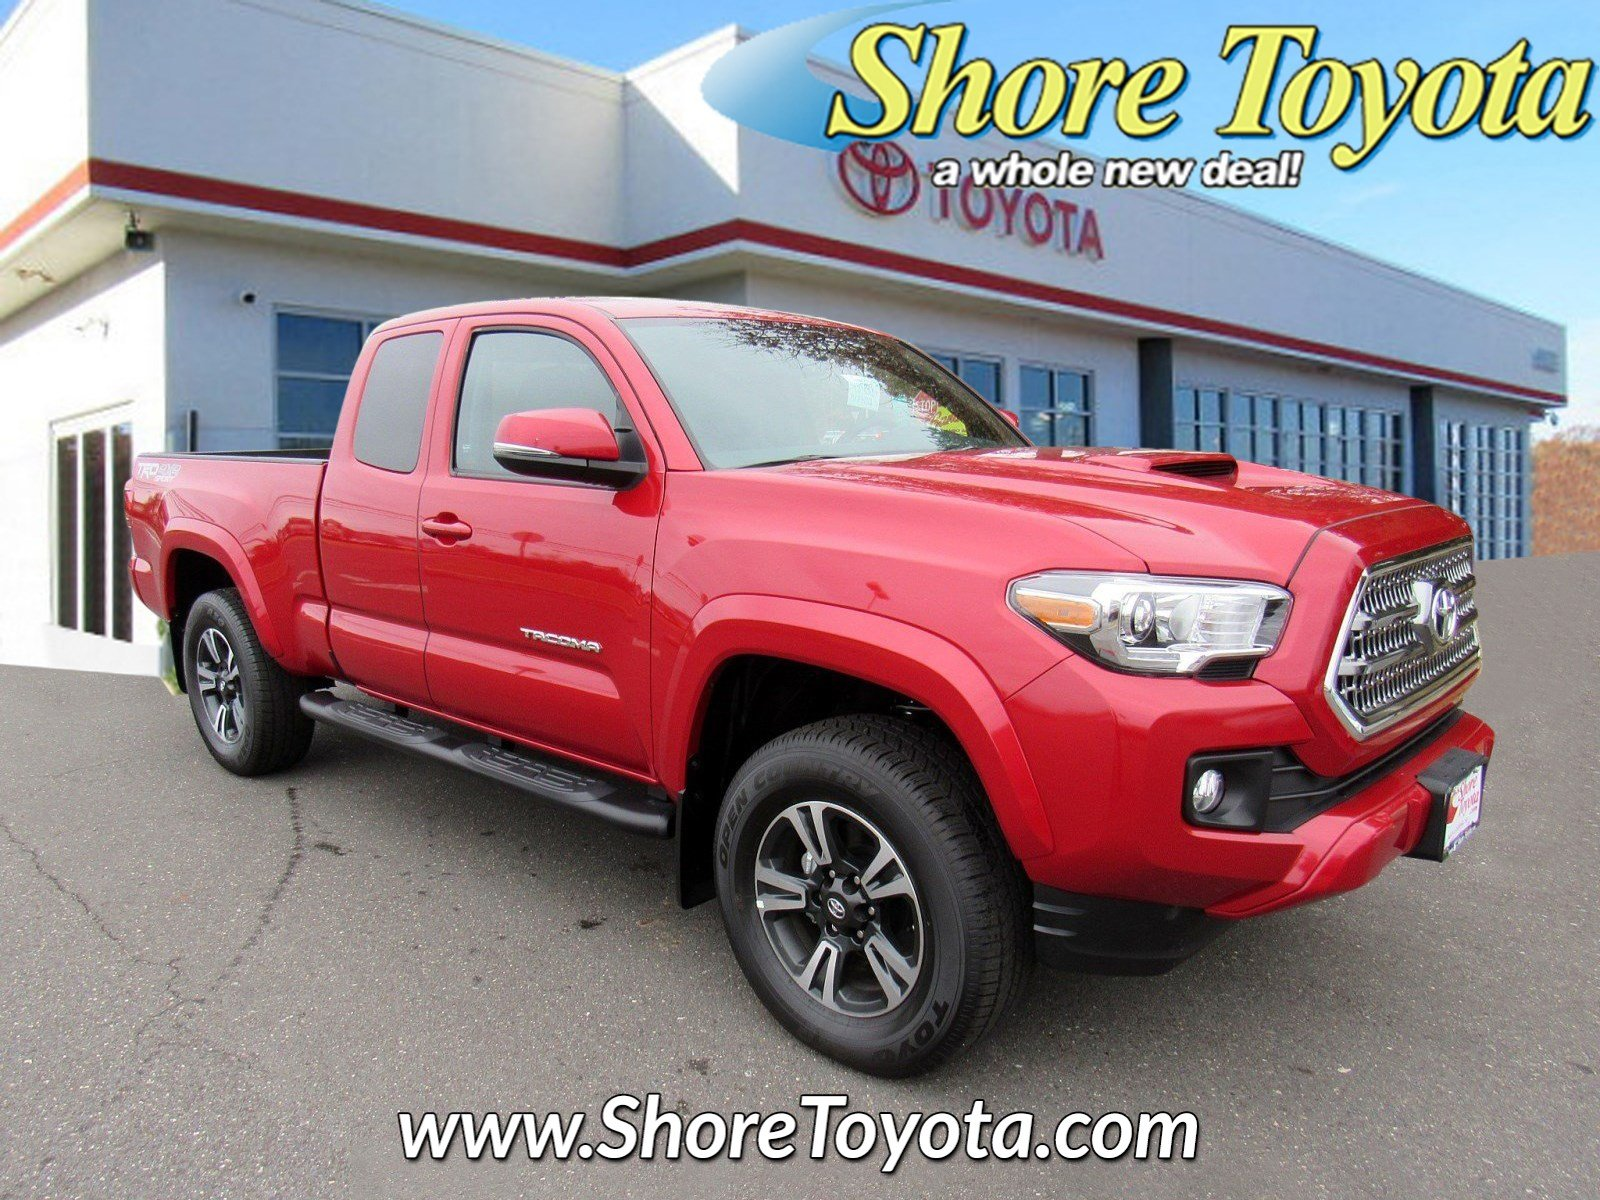 New 2017 Toyota Tacoma Trd Sport Access Cab 6 Bed V6 4x4 At For Sale Long Fuel Hostage Wheels Mays Landing Nj Serving Vineland Atlantic City Turnersville Vin